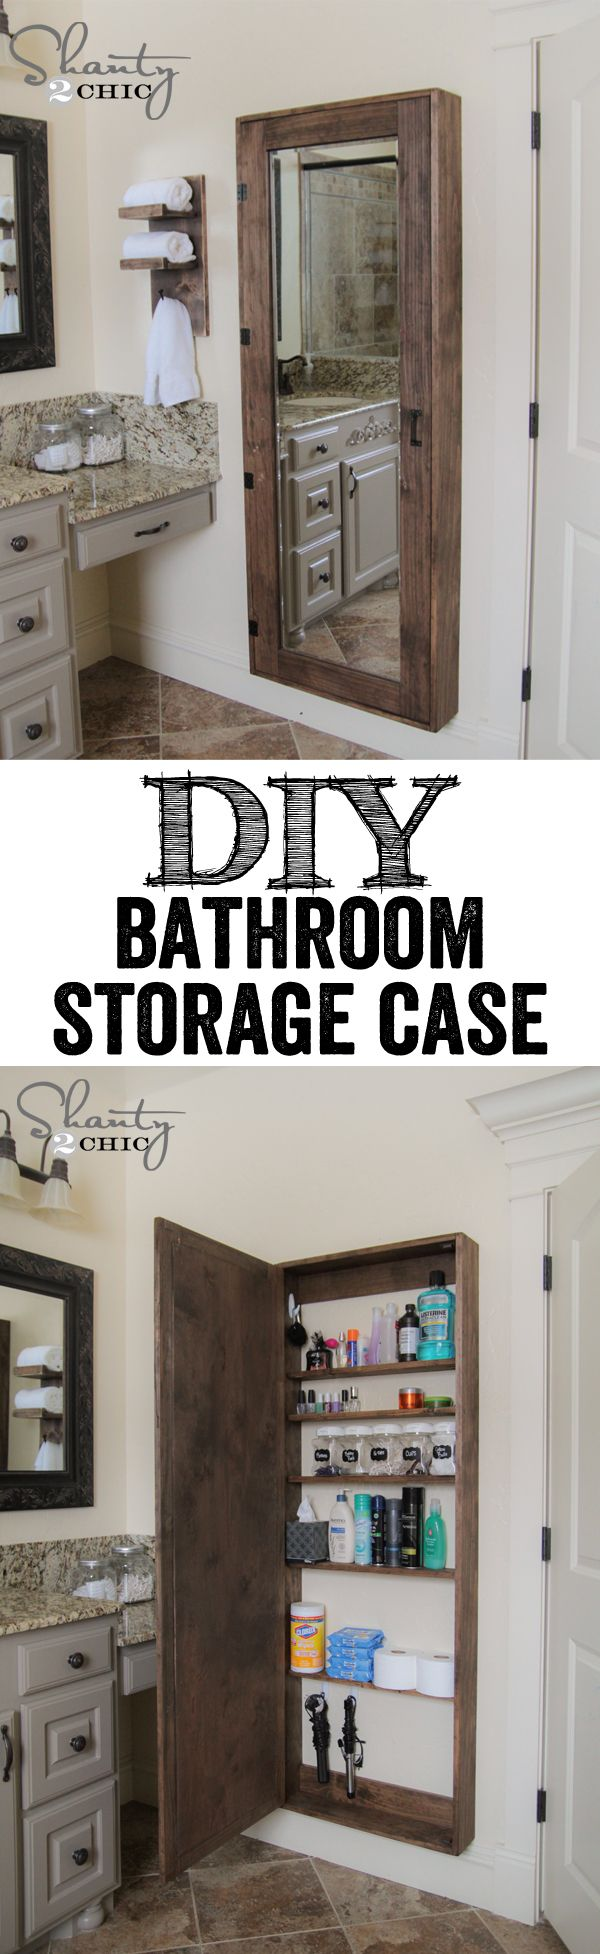 DIY Bathroom Organization Cabinet with Full Length Mirror Tutorial - Really Love this Idea!! | Shanty2Chic (2.15.14)